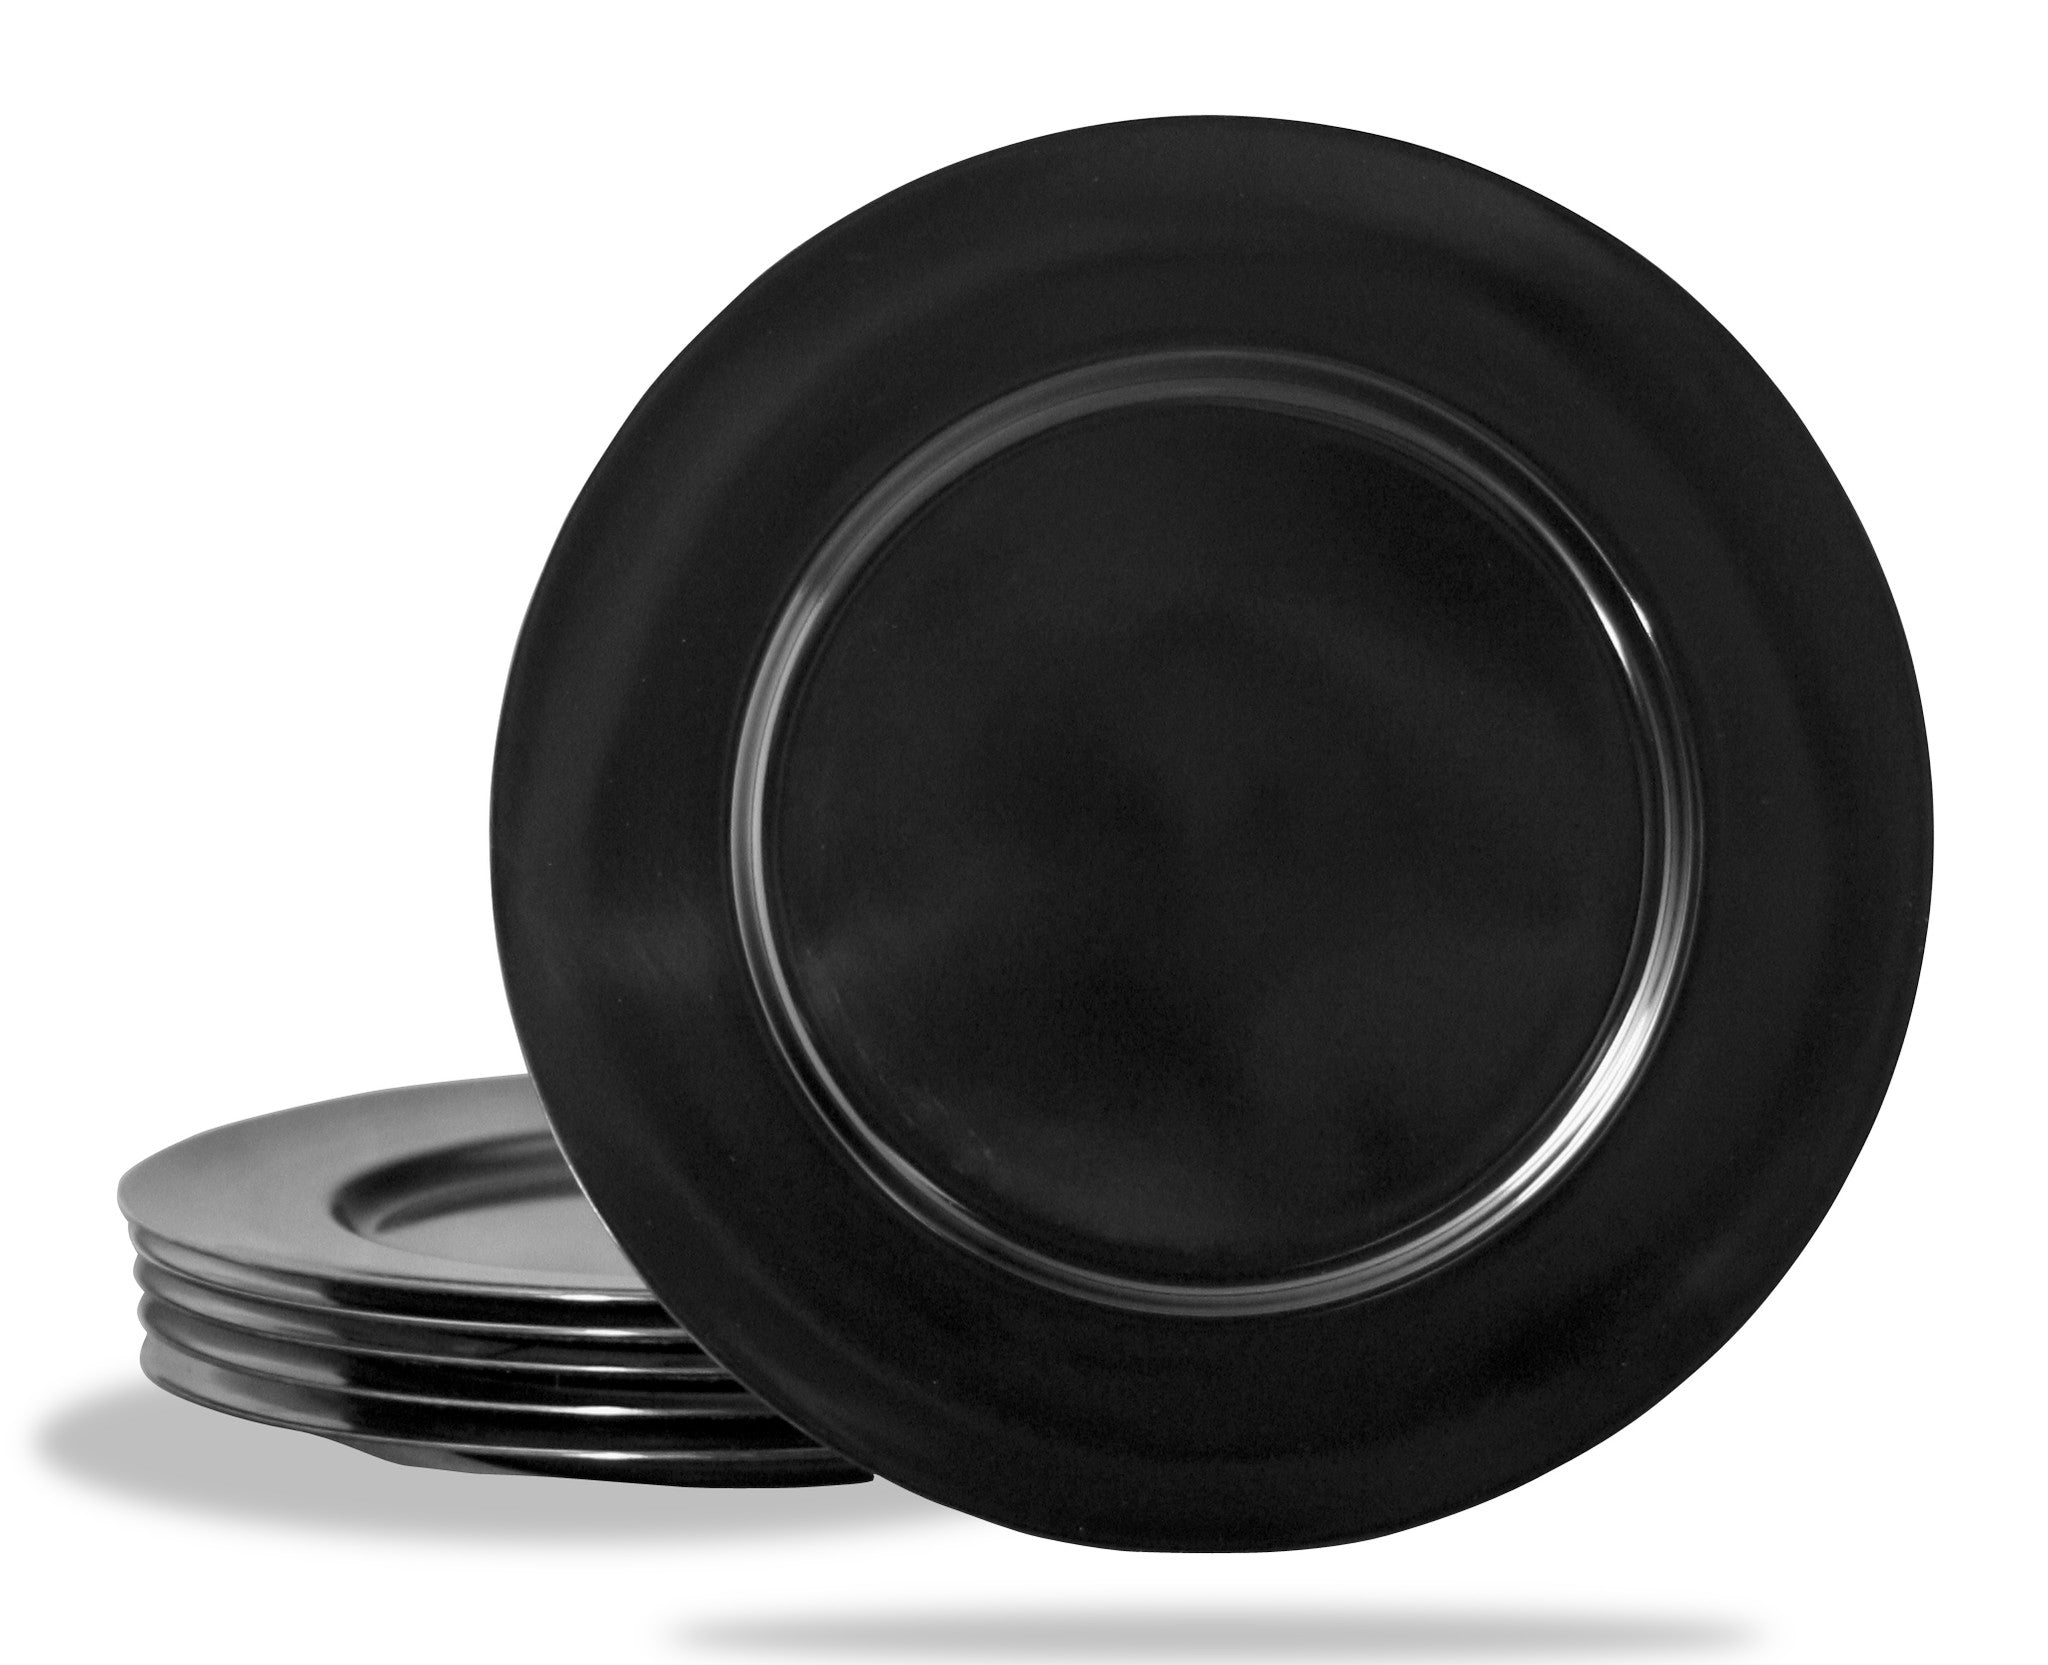 6pc Melamine Salad Plate Set Black  sc 1 st  Reston Lloyd & Salad Plate - Black u2013 Reston Lloyd